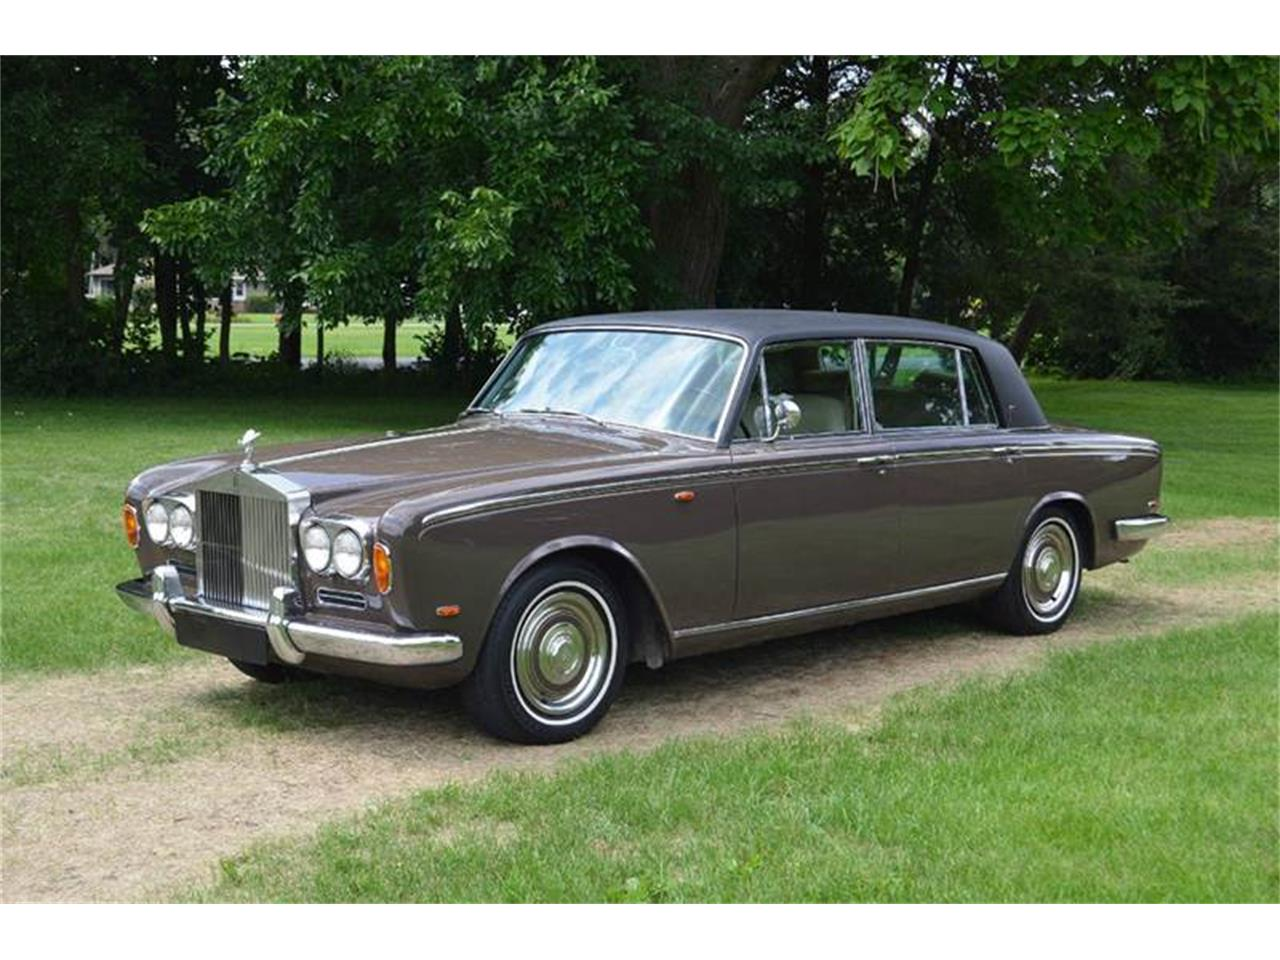 Large Picture of '69 Rolls-Royce Silver Shadow - $54,000.00 - MO62